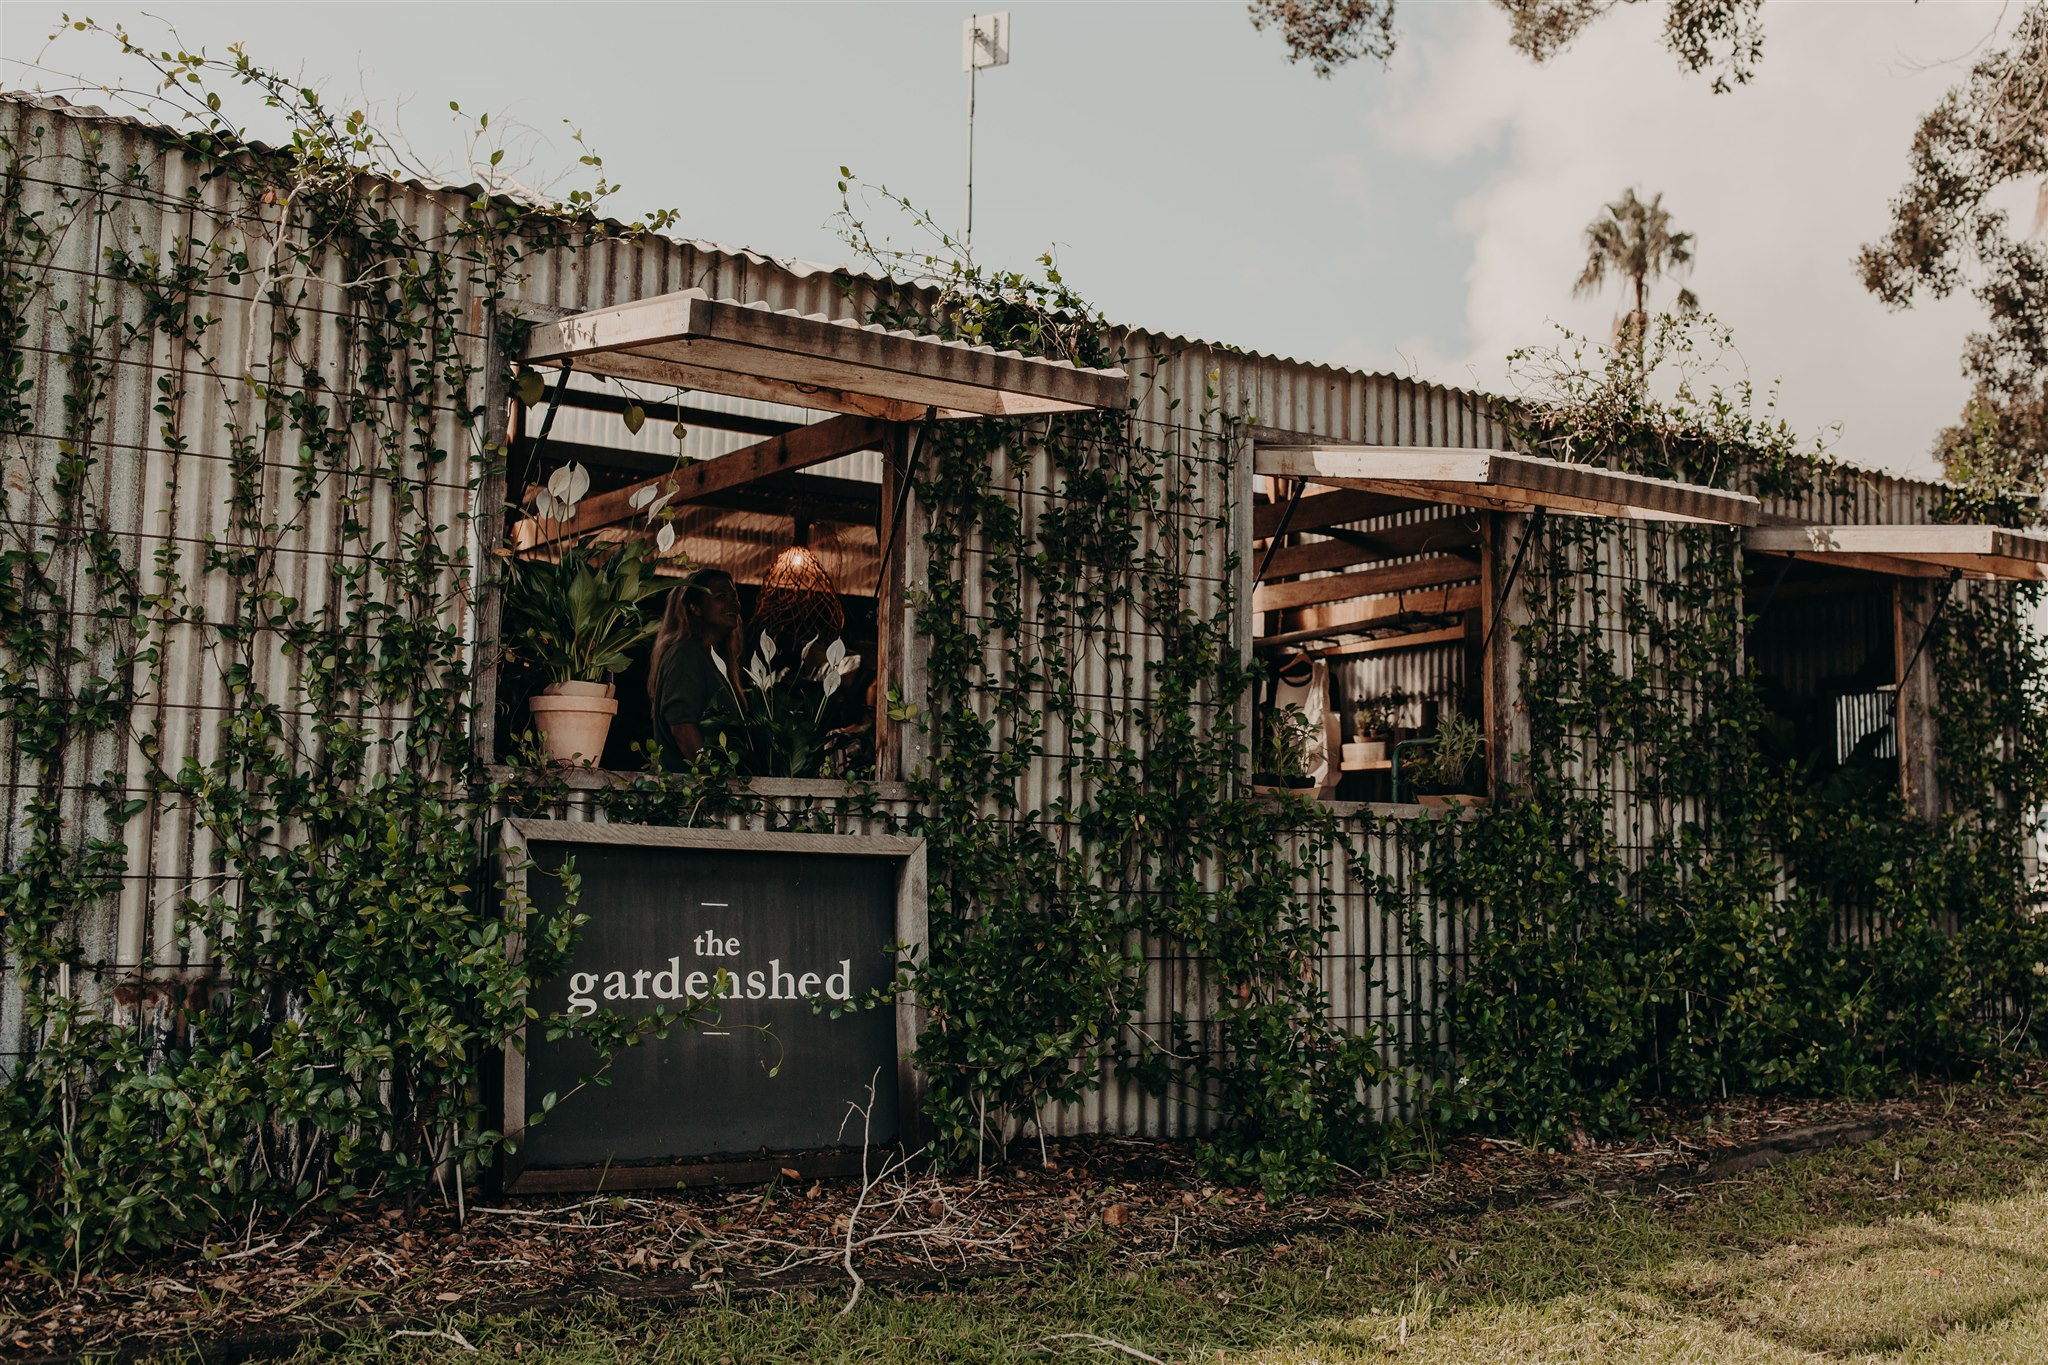 FInd us atthe farm, byron bay - Open 7 Days 8am - 4pm